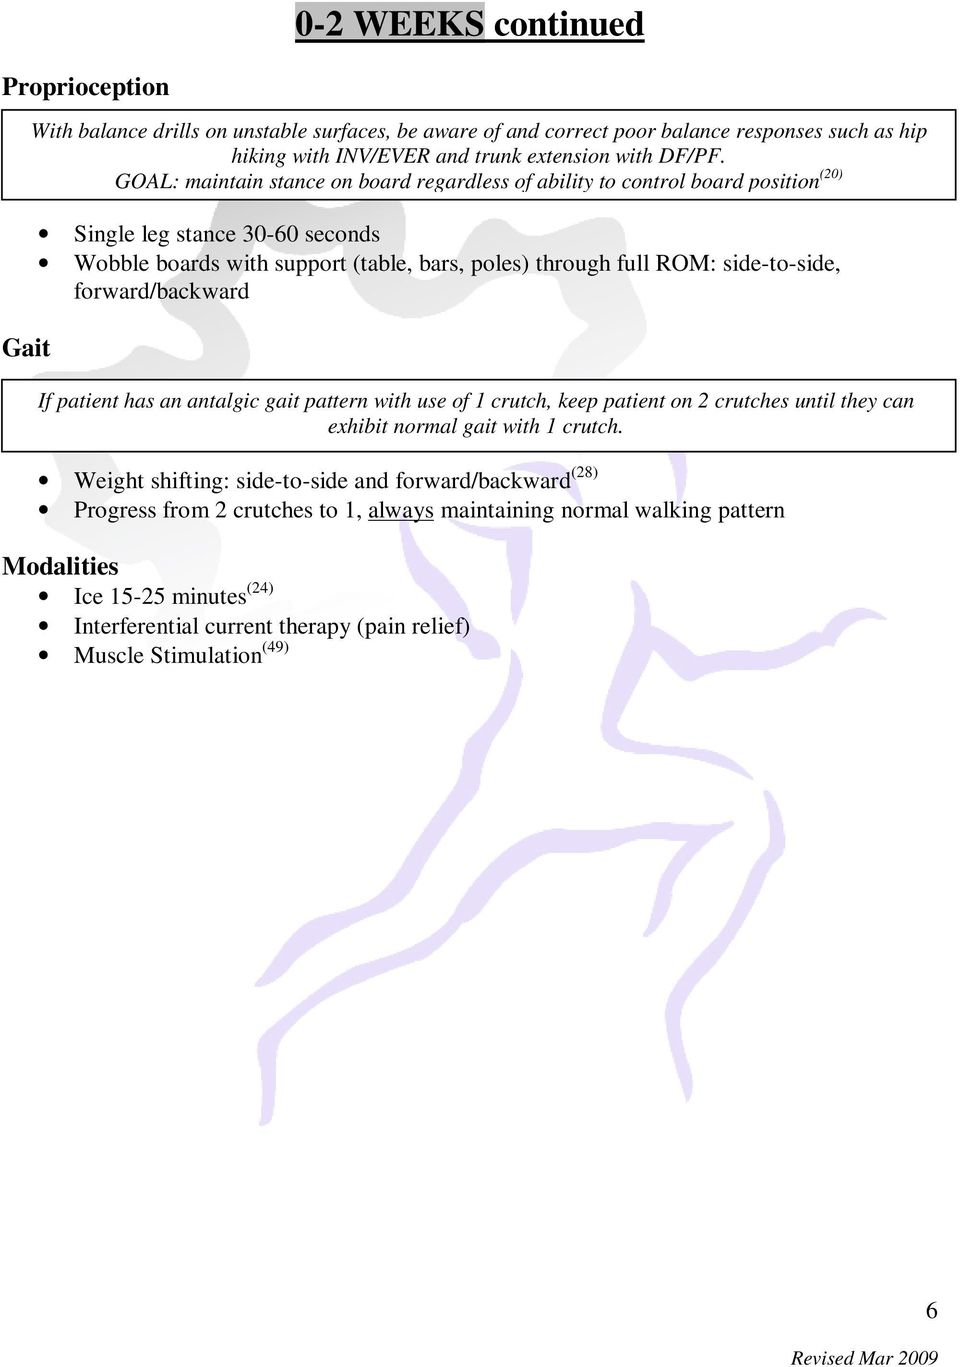 side-to-side, forward/backward If patient has an antalgic gait pattern with use of 1 crutch, keep patient on 2 crutches until they can exhibit normal gait with 1 crutch.